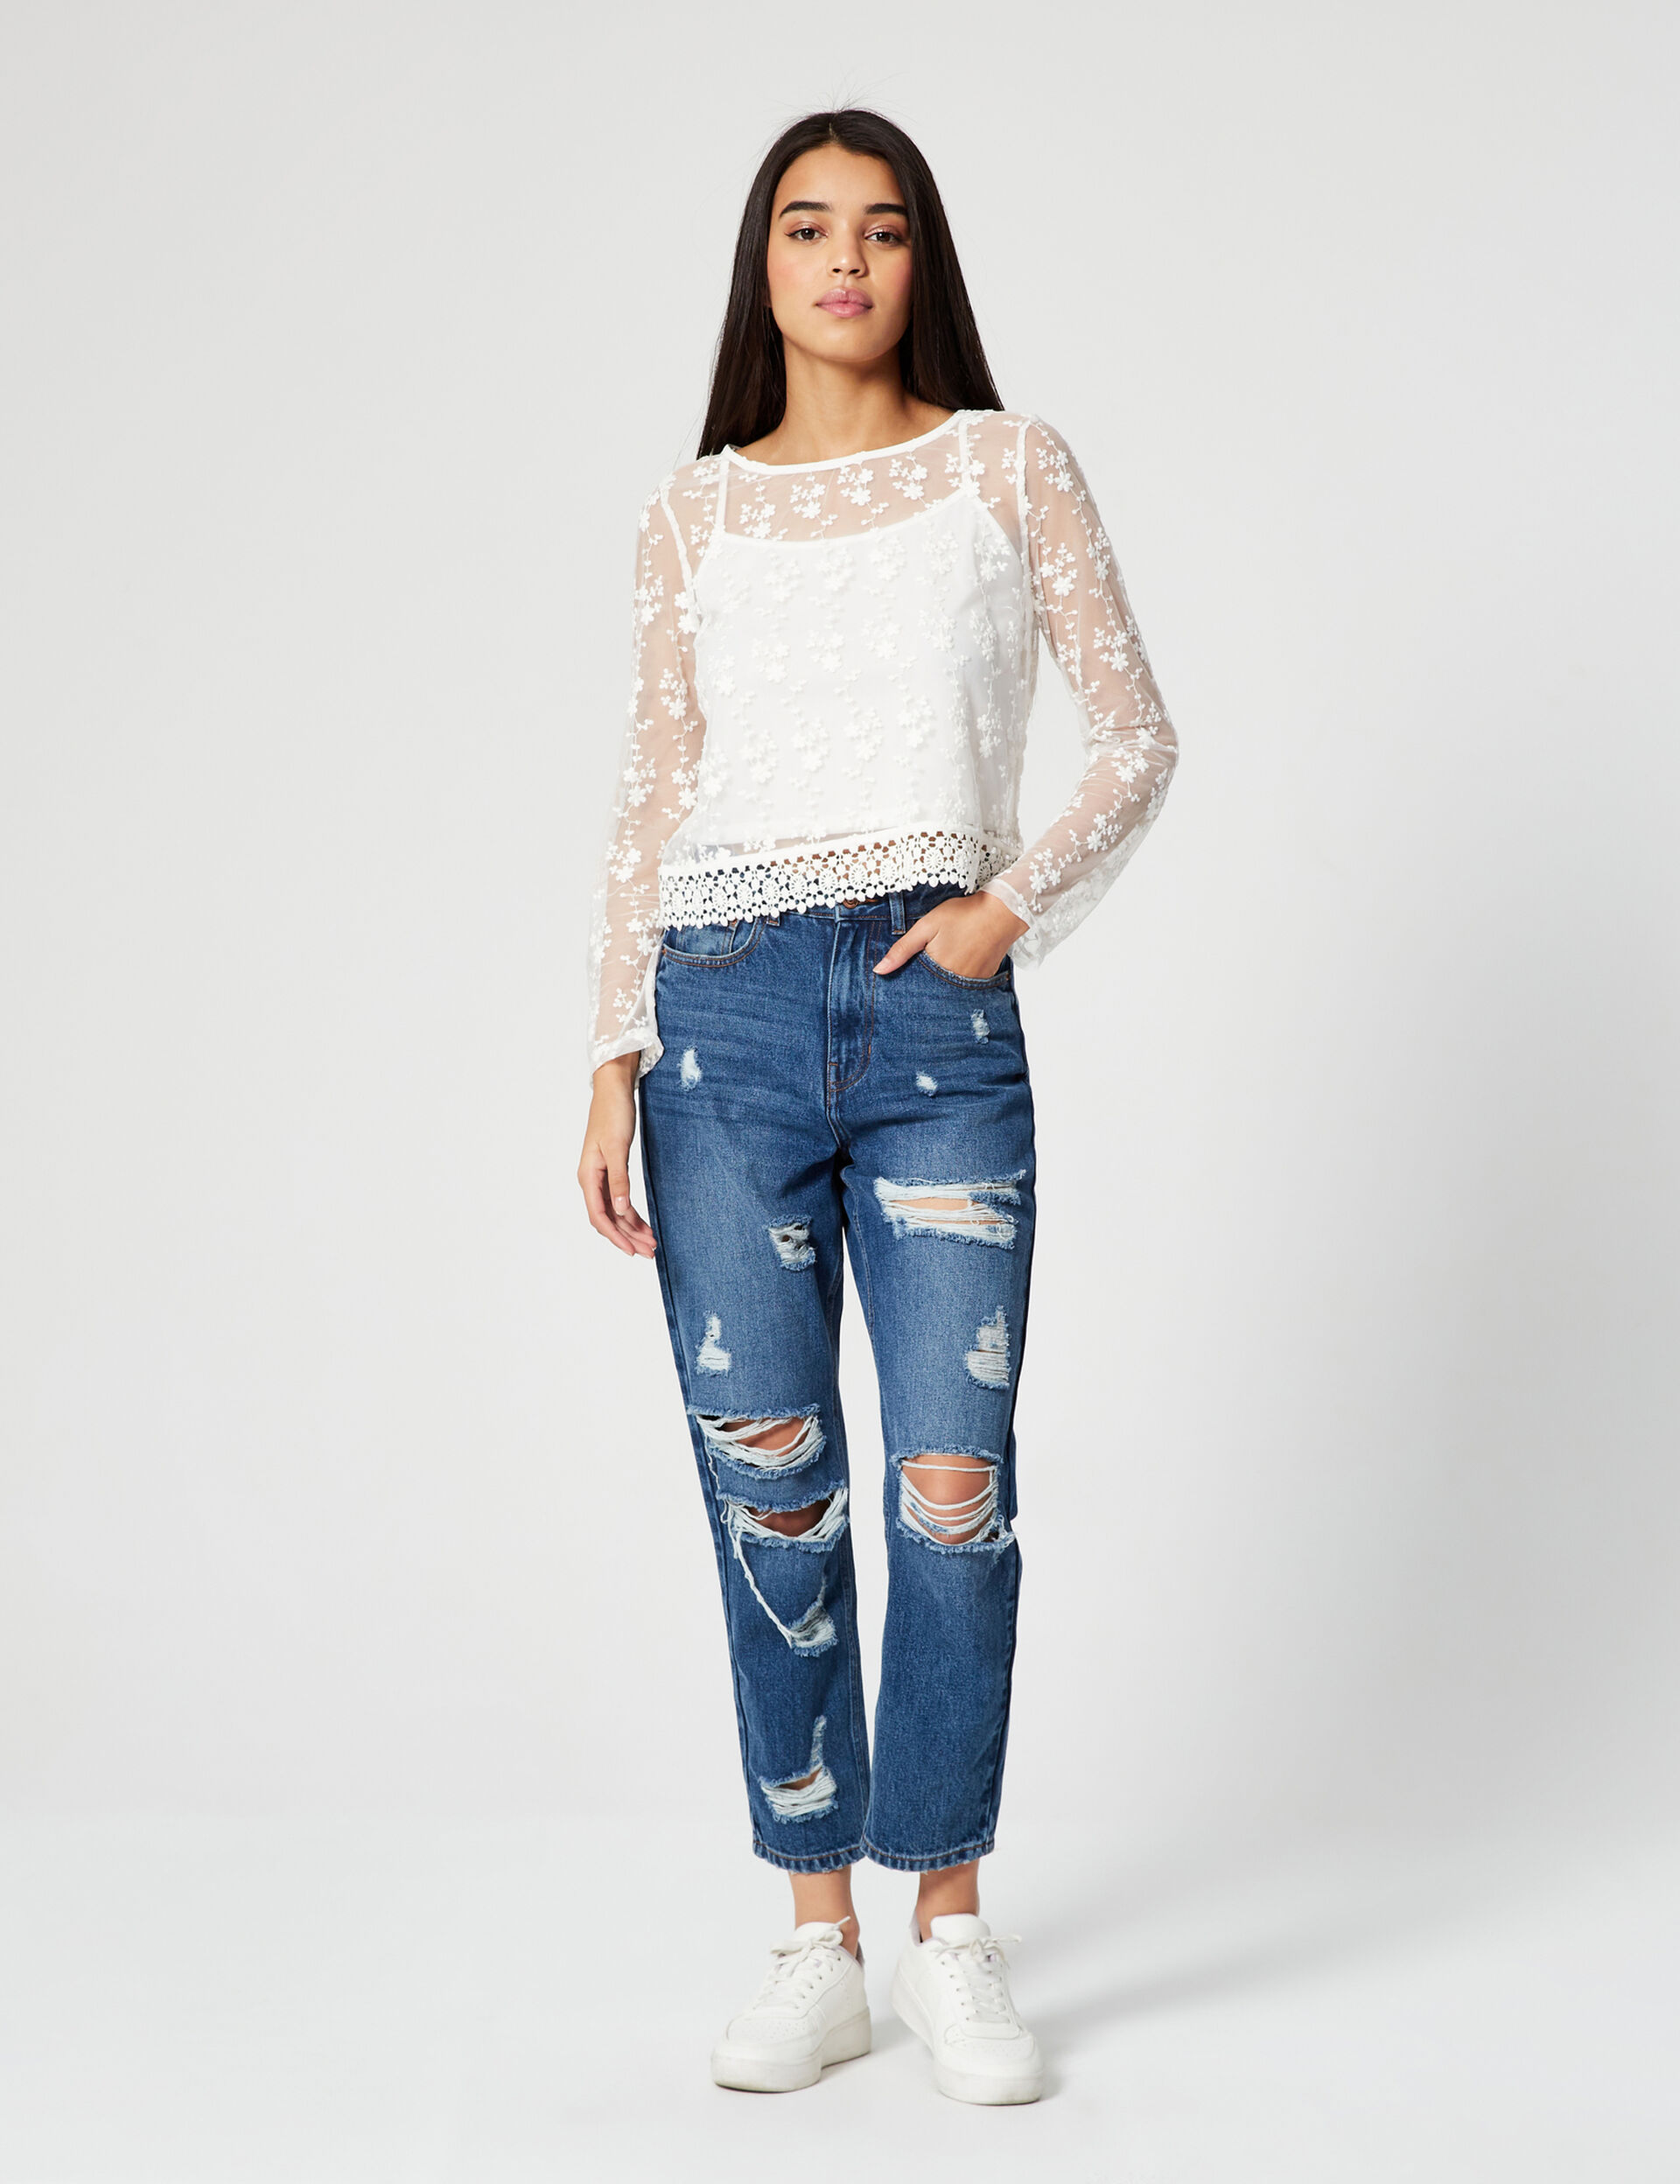 Mesh macramé top